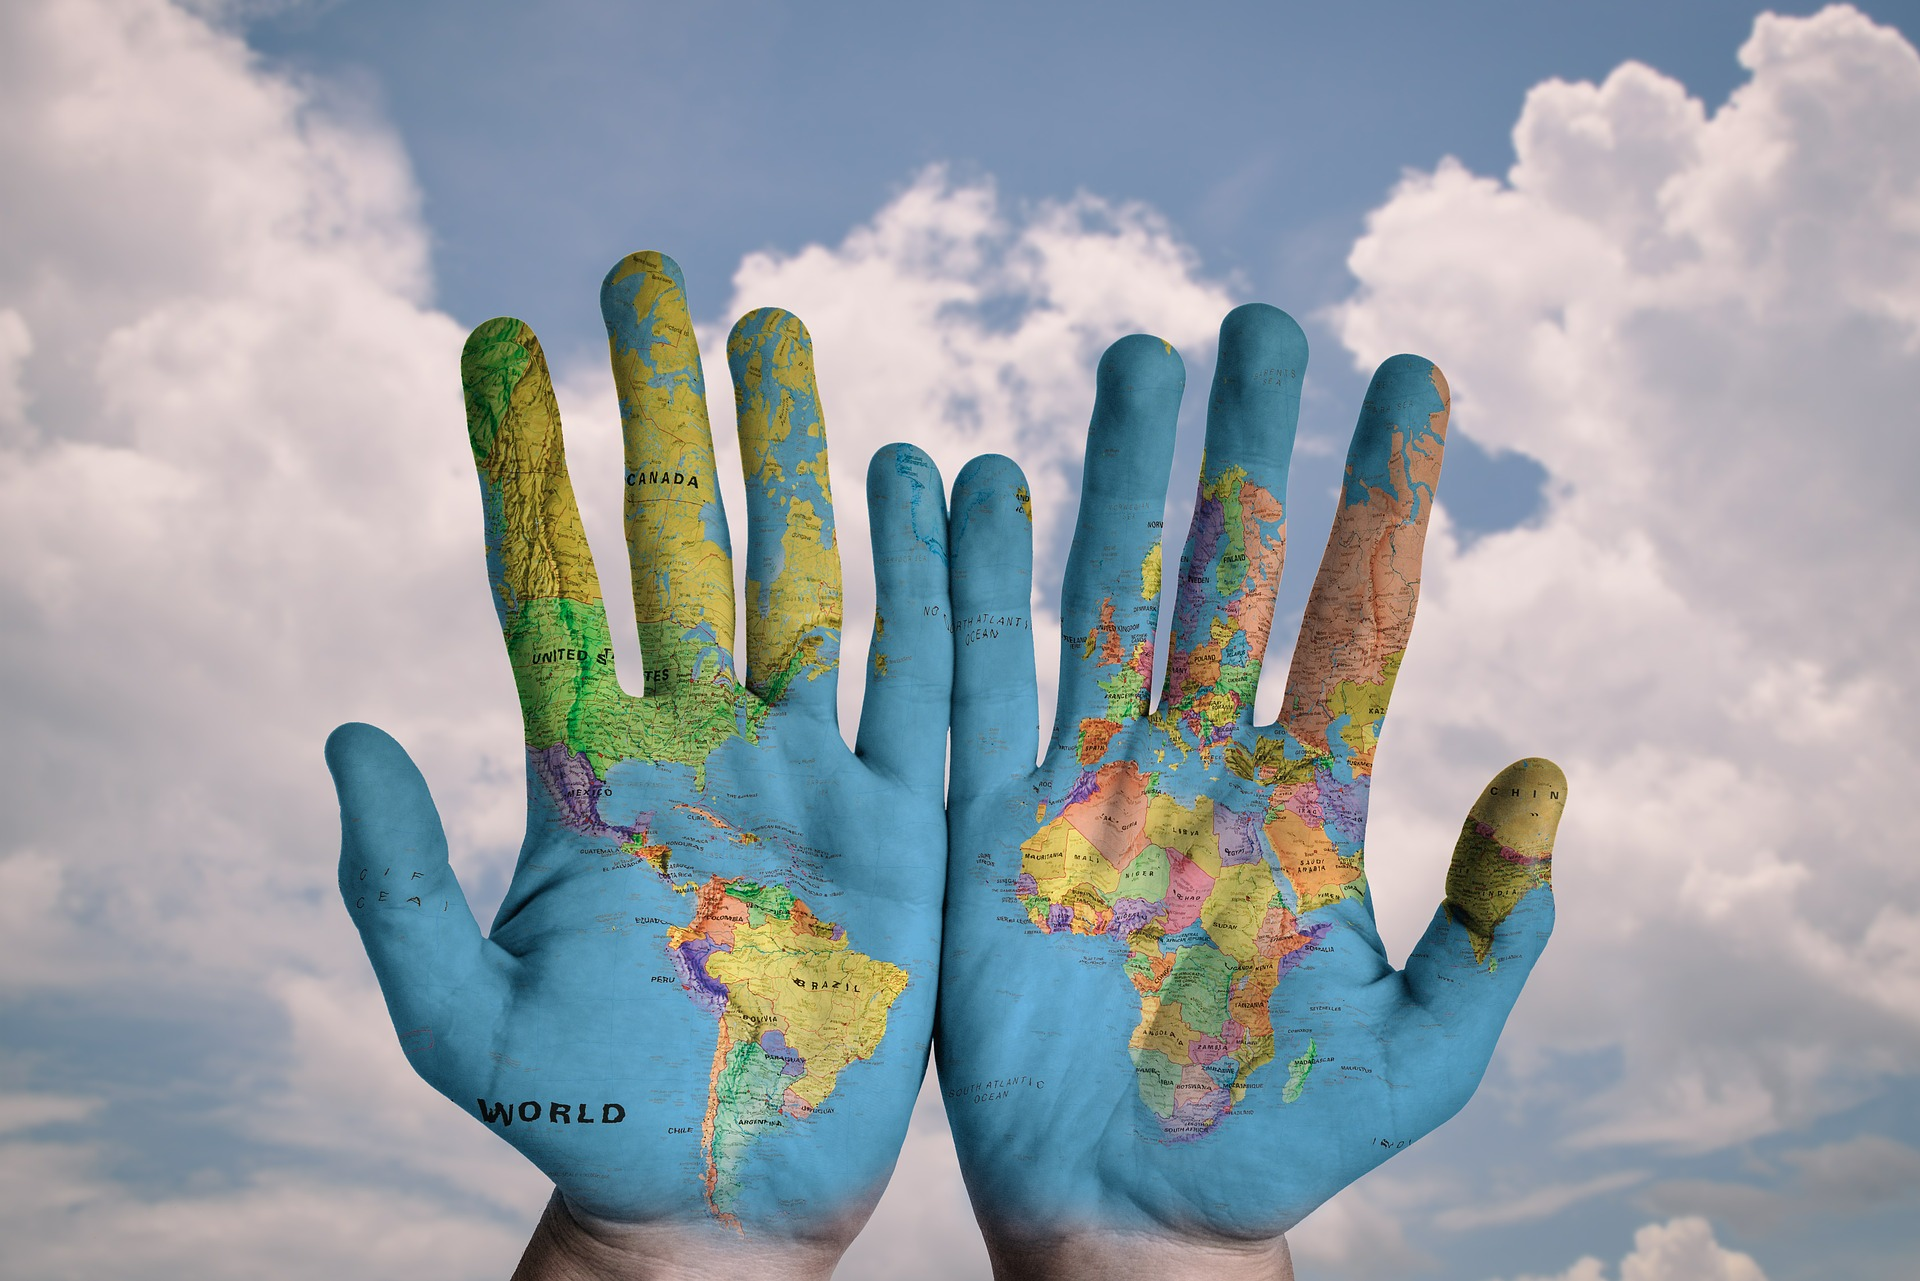 A pair of hands with a multi-coloured map on the palms and the sea set against the sky which is cloudy.